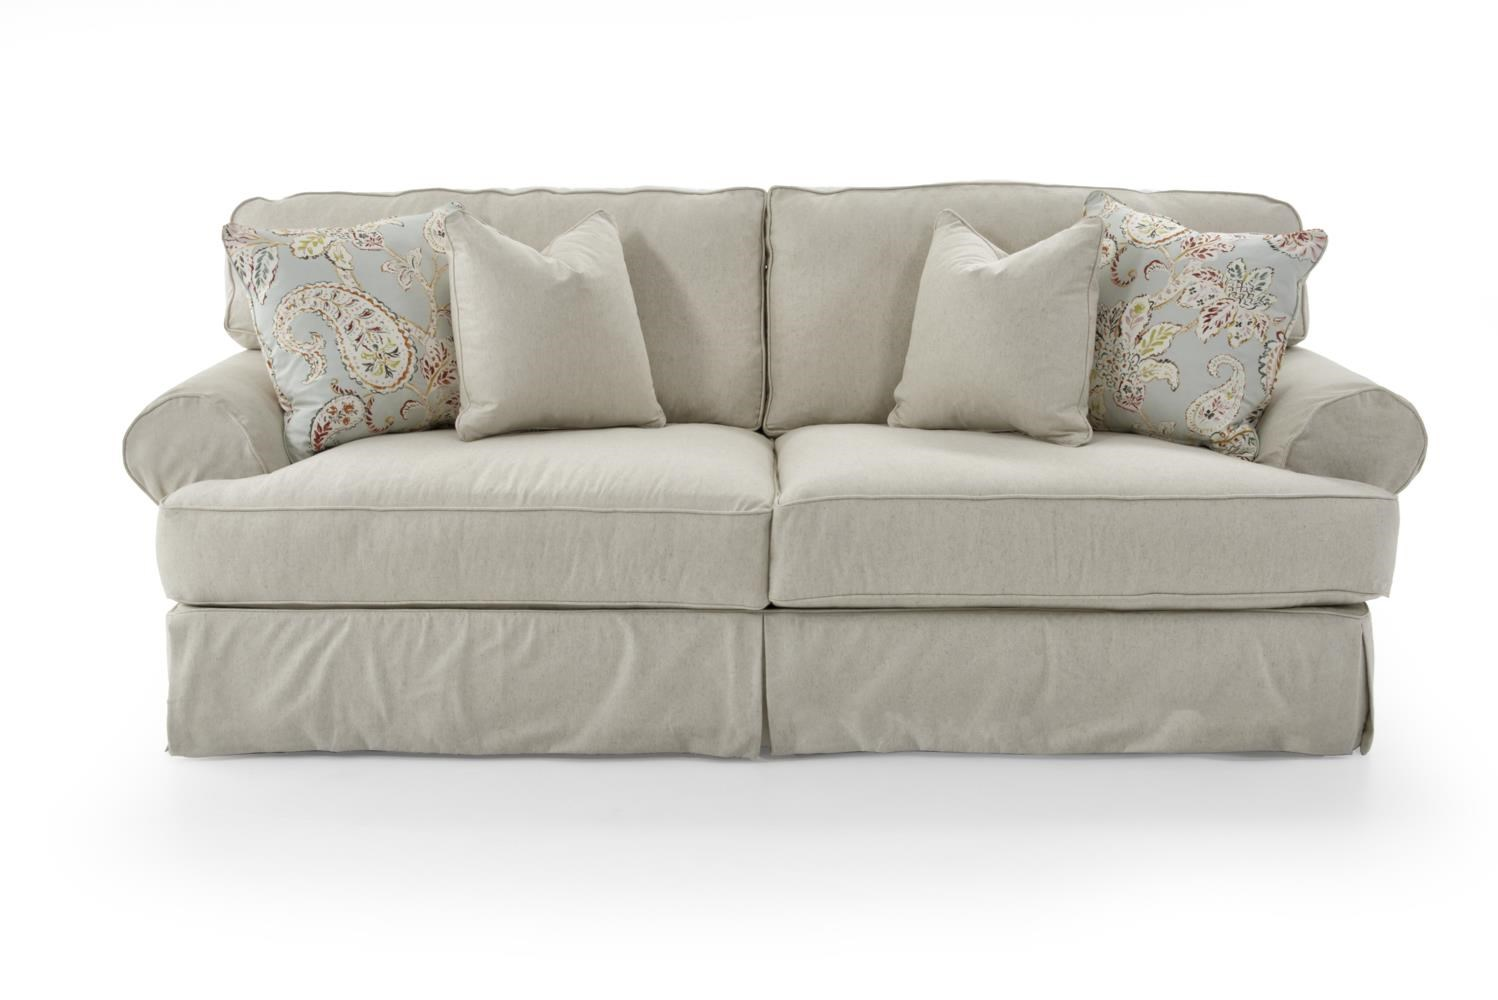 Rowe Addison  Traditional 2 Seat Sofa With Slipcover - Item Number: 7860-000 BAL-V-10526-84